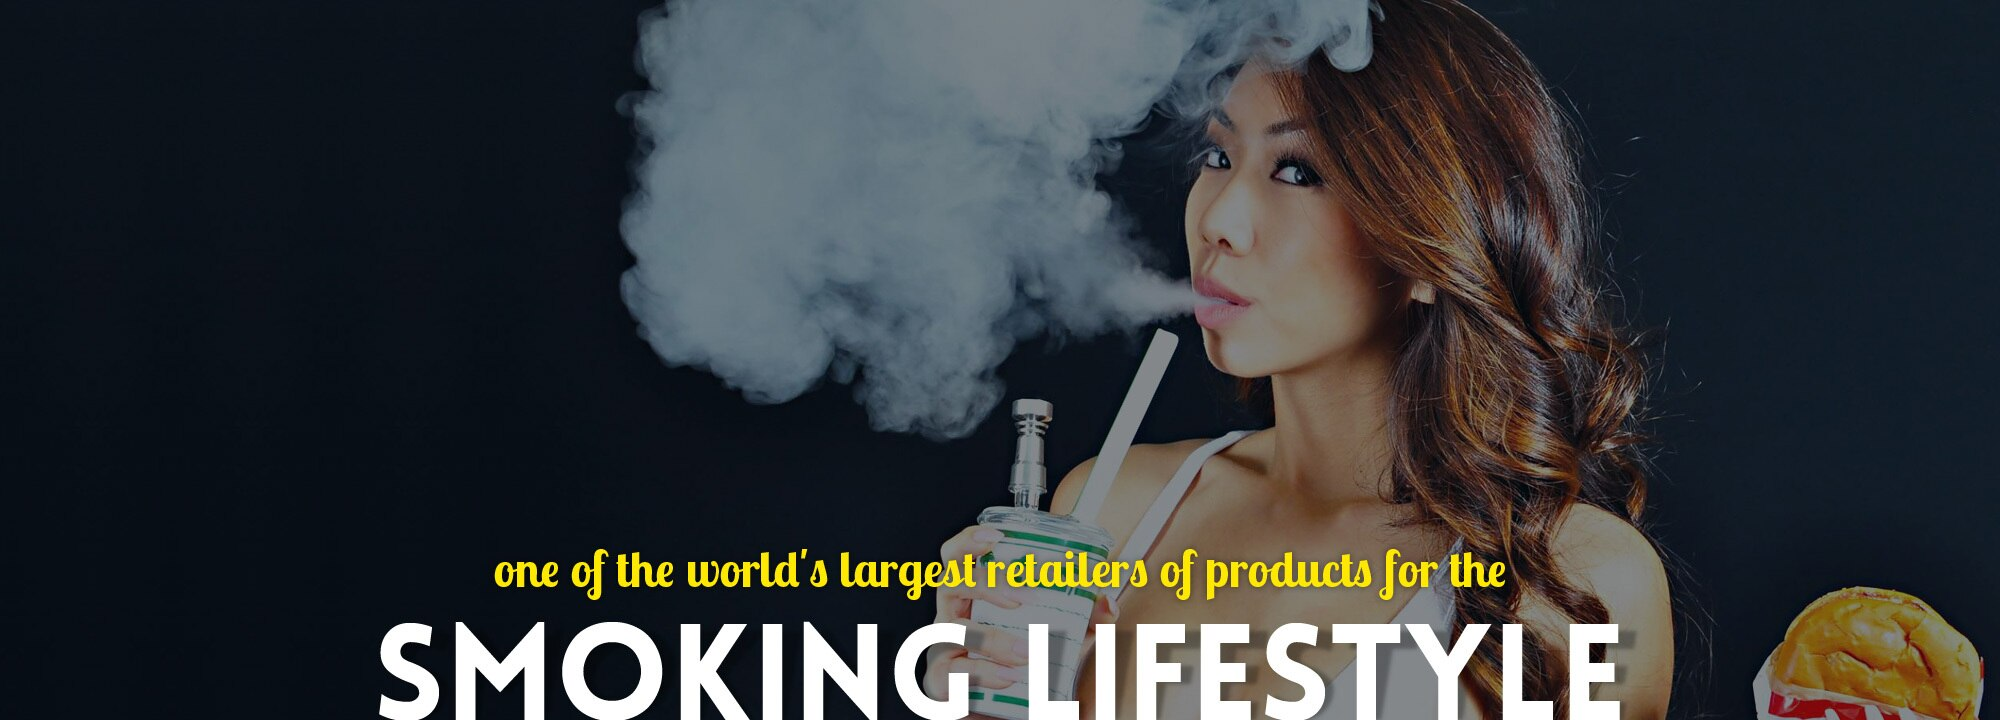 Help Quit Smoking In Style Cigs Review Series